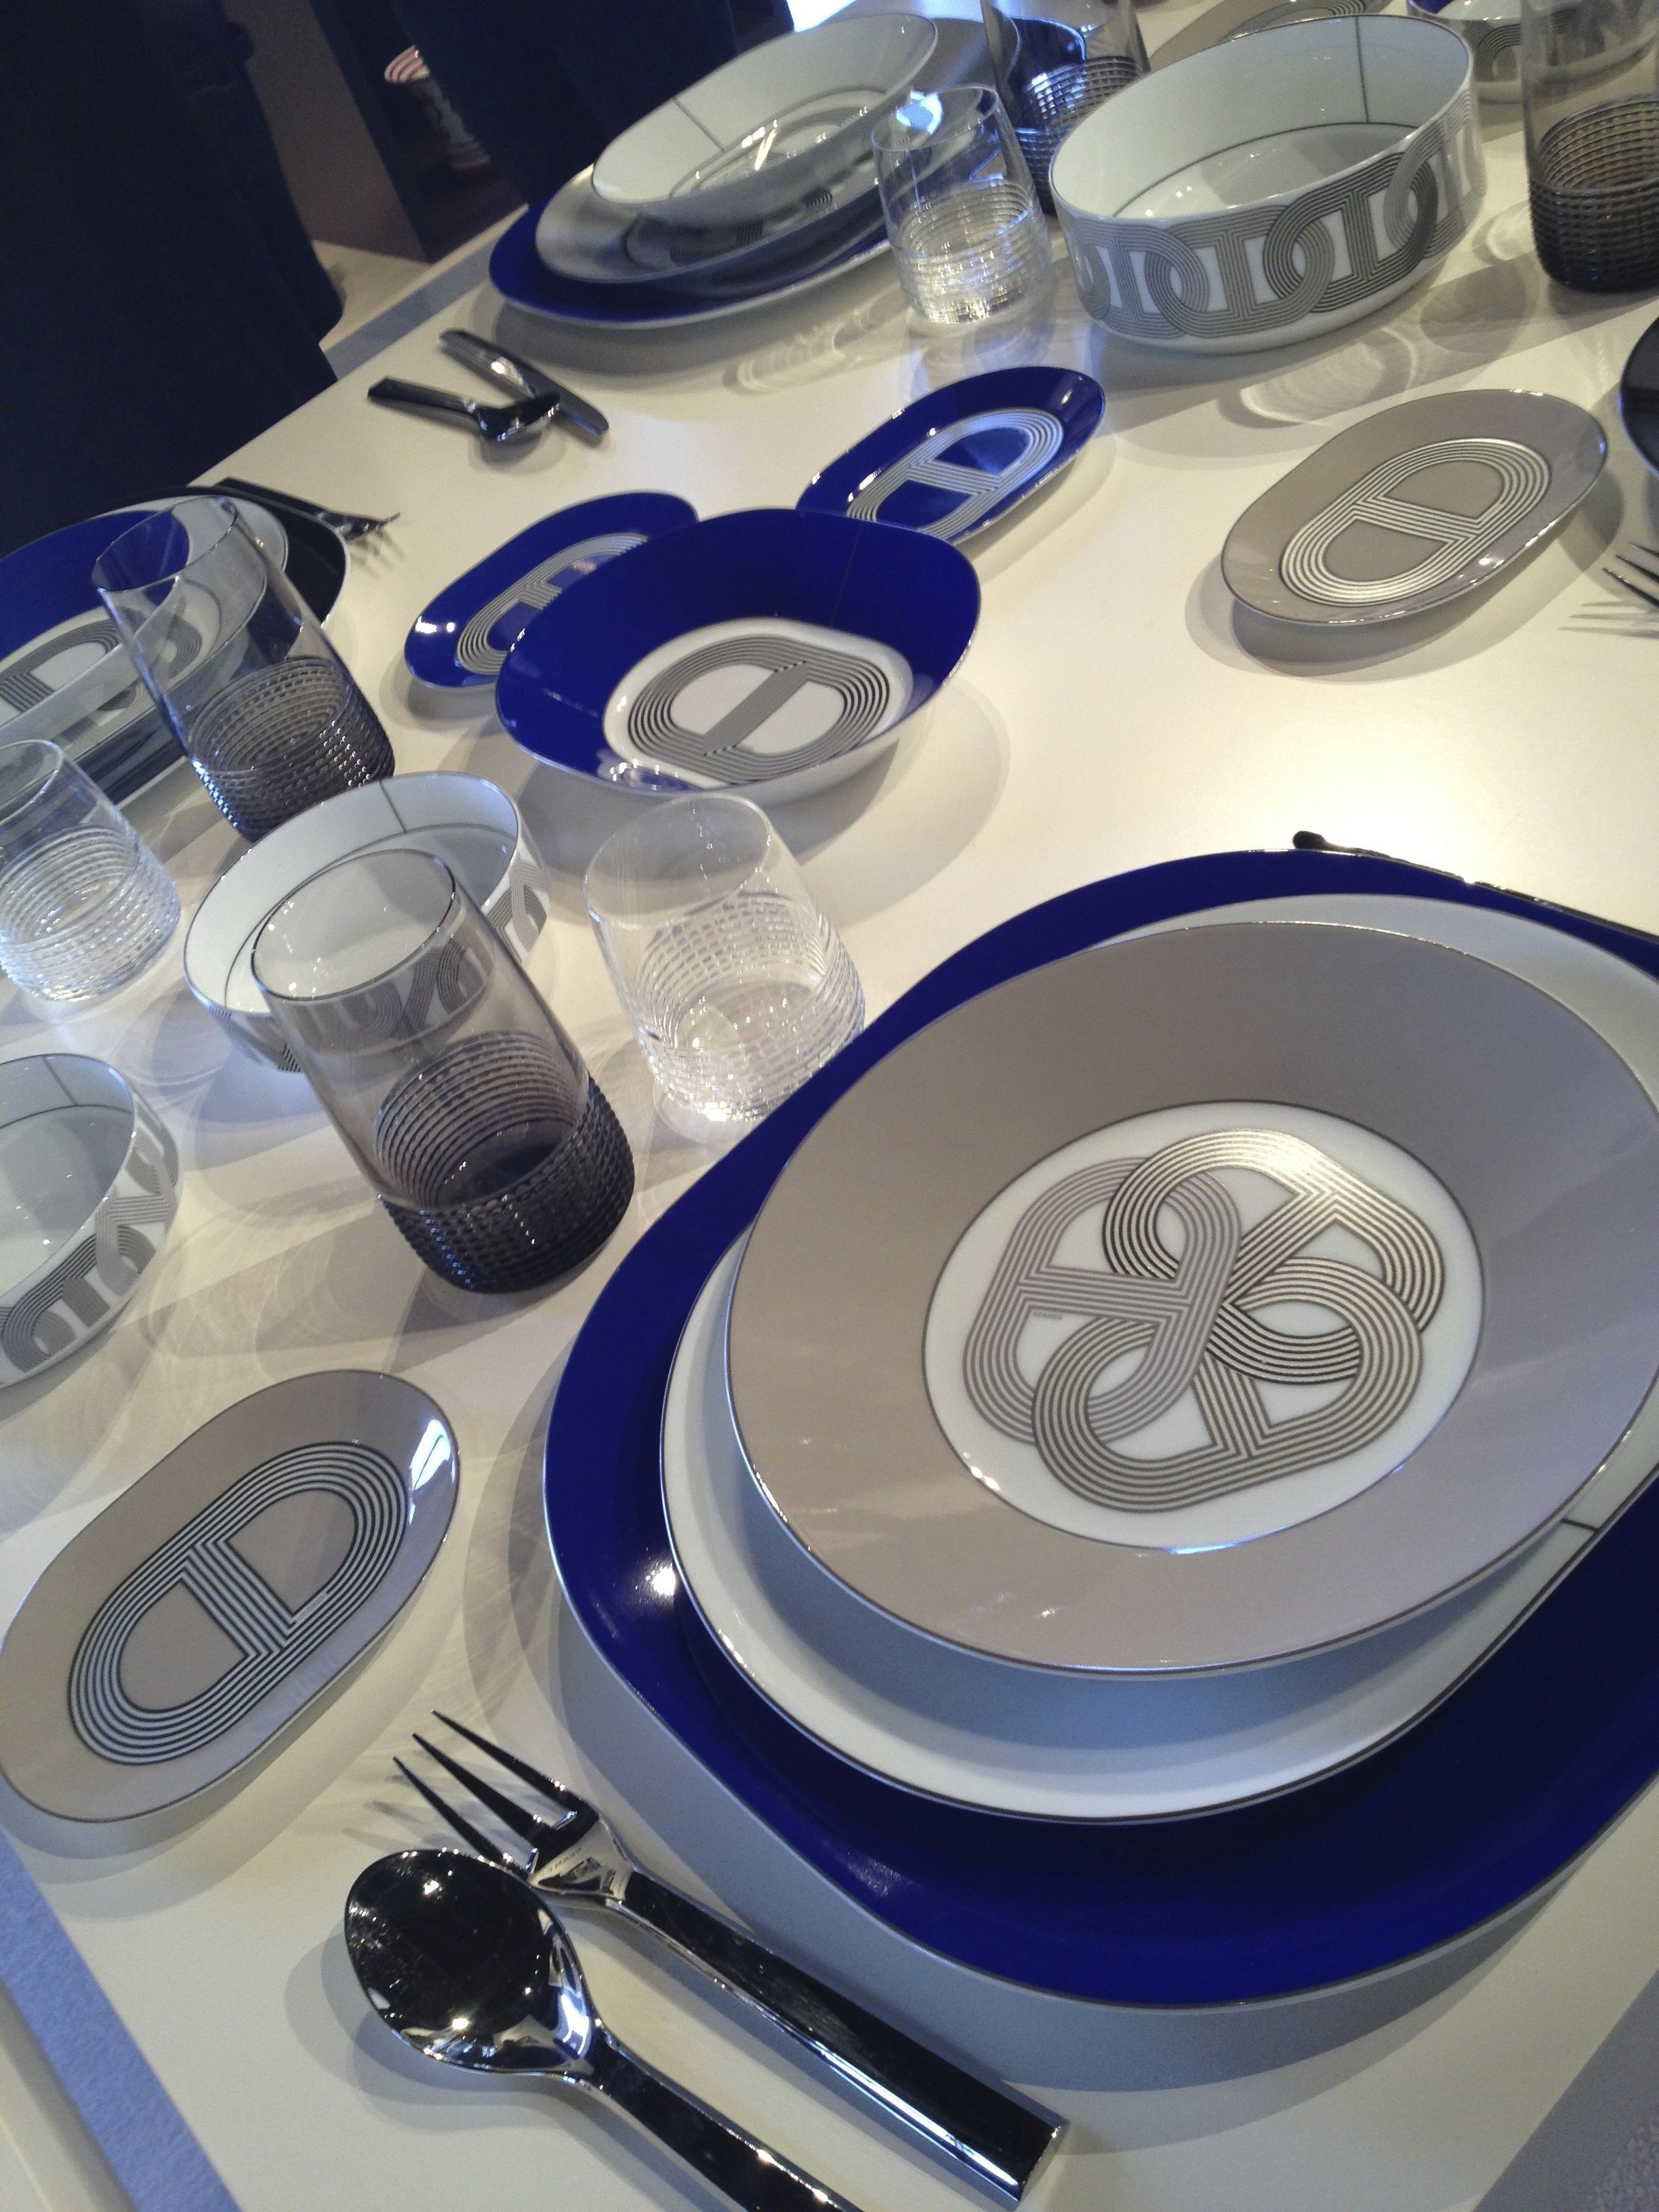 The New Hermés Tableware Collection  Tableware design, Luxury